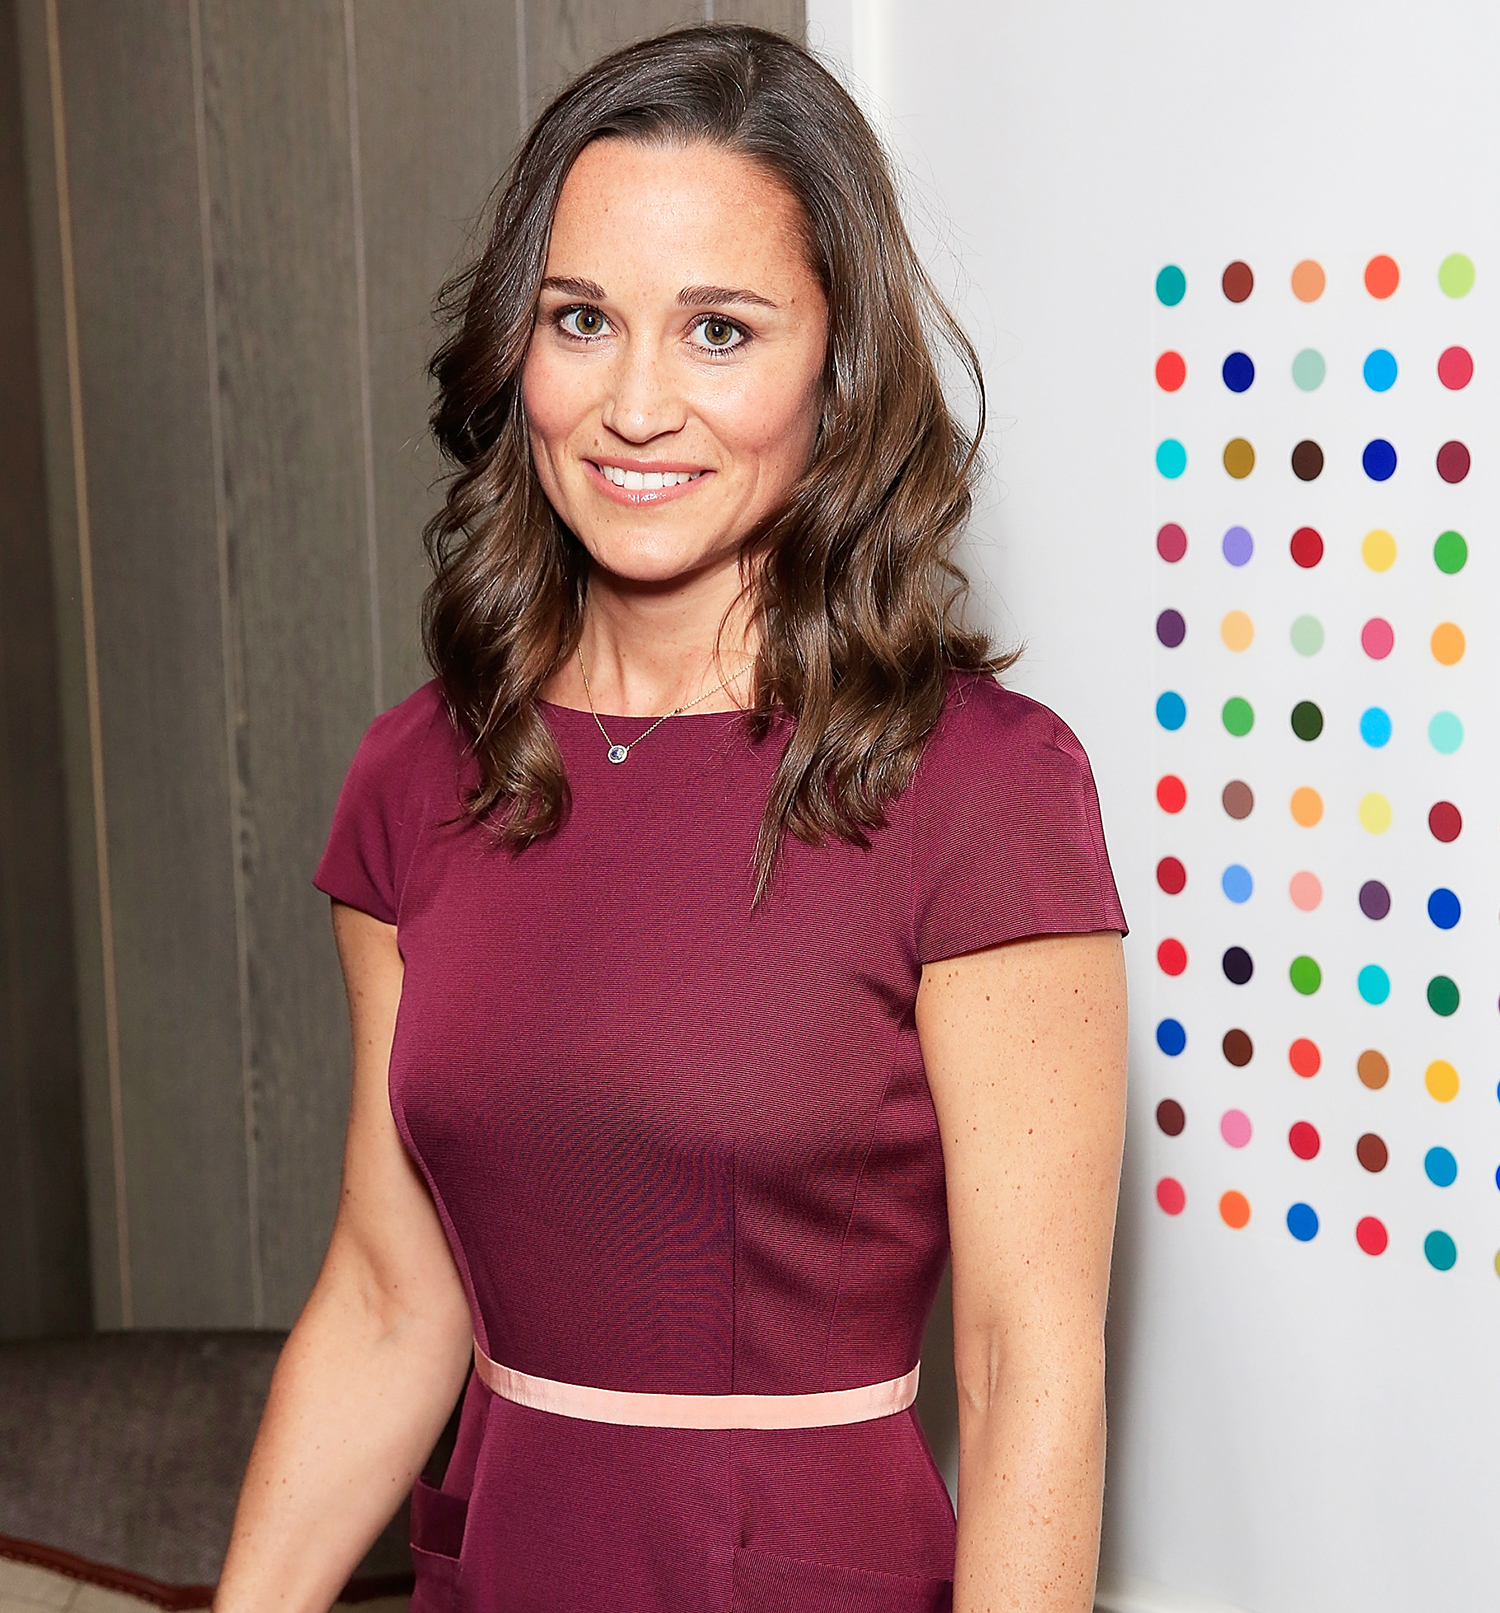 ICloud Pippa Middleton nudes (75 photos), Ass, Fappening, Twitter, braless 2015